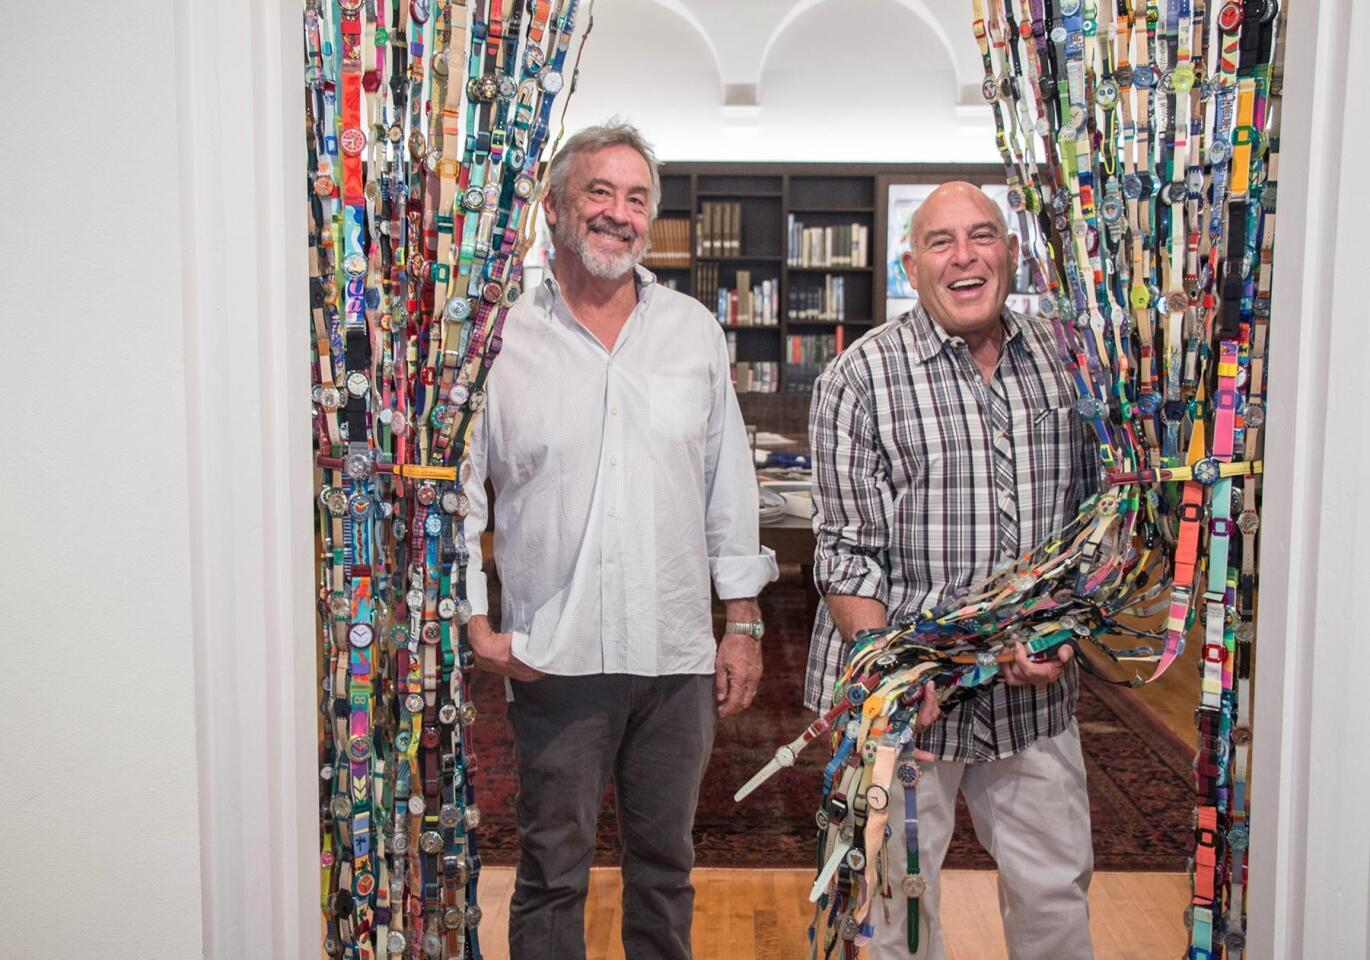 Mark Quint and Roy Porello pose with Porello's 1000-Swatch curtain.